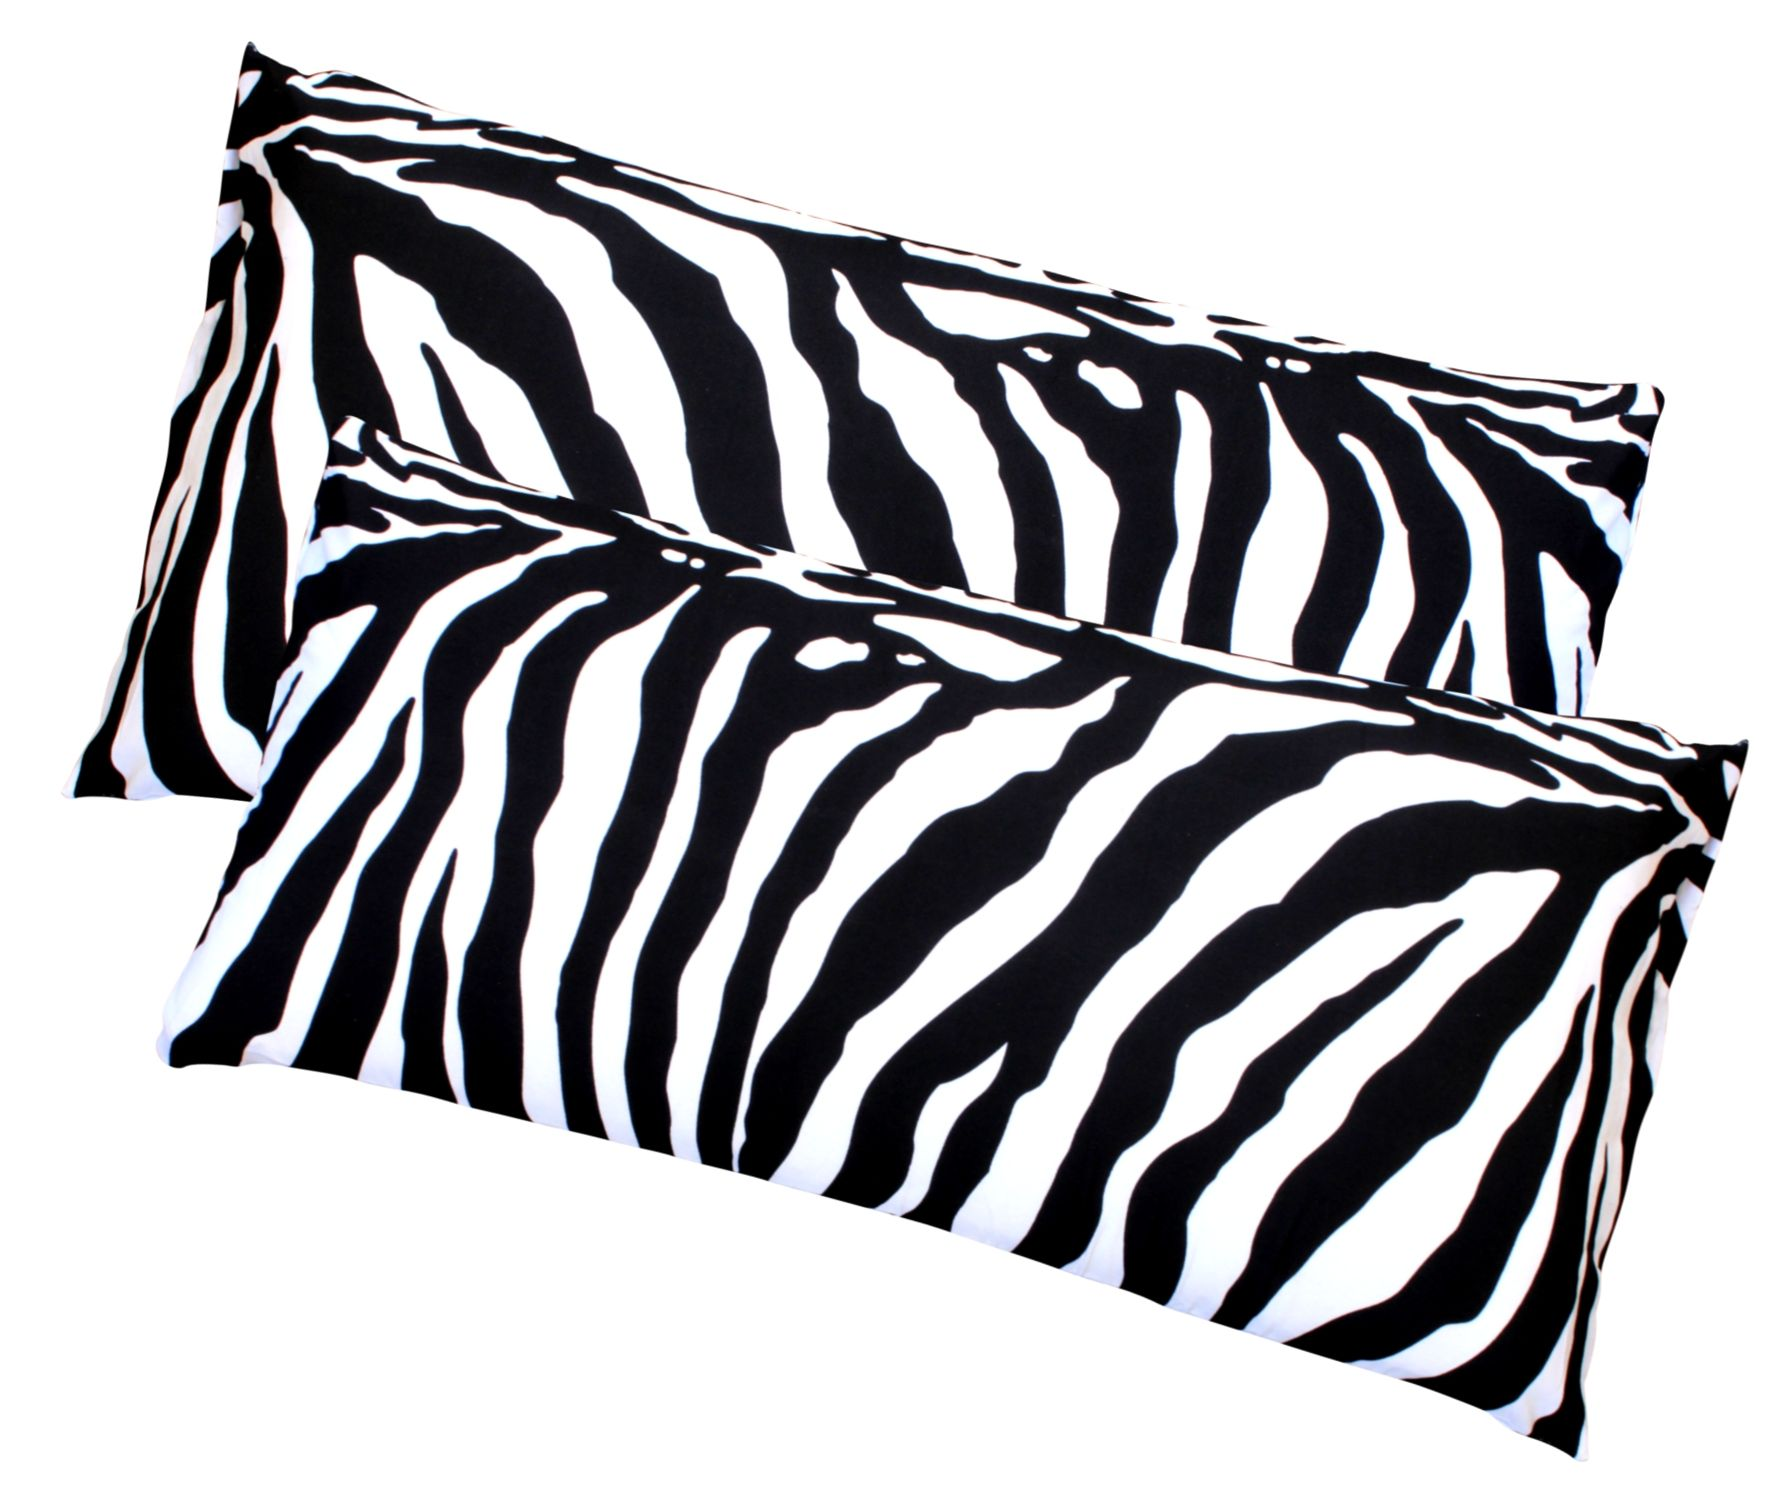 2x zebra kopfkissenbezug mikrofaser kissenbezug. Black Bedroom Furniture Sets. Home Design Ideas